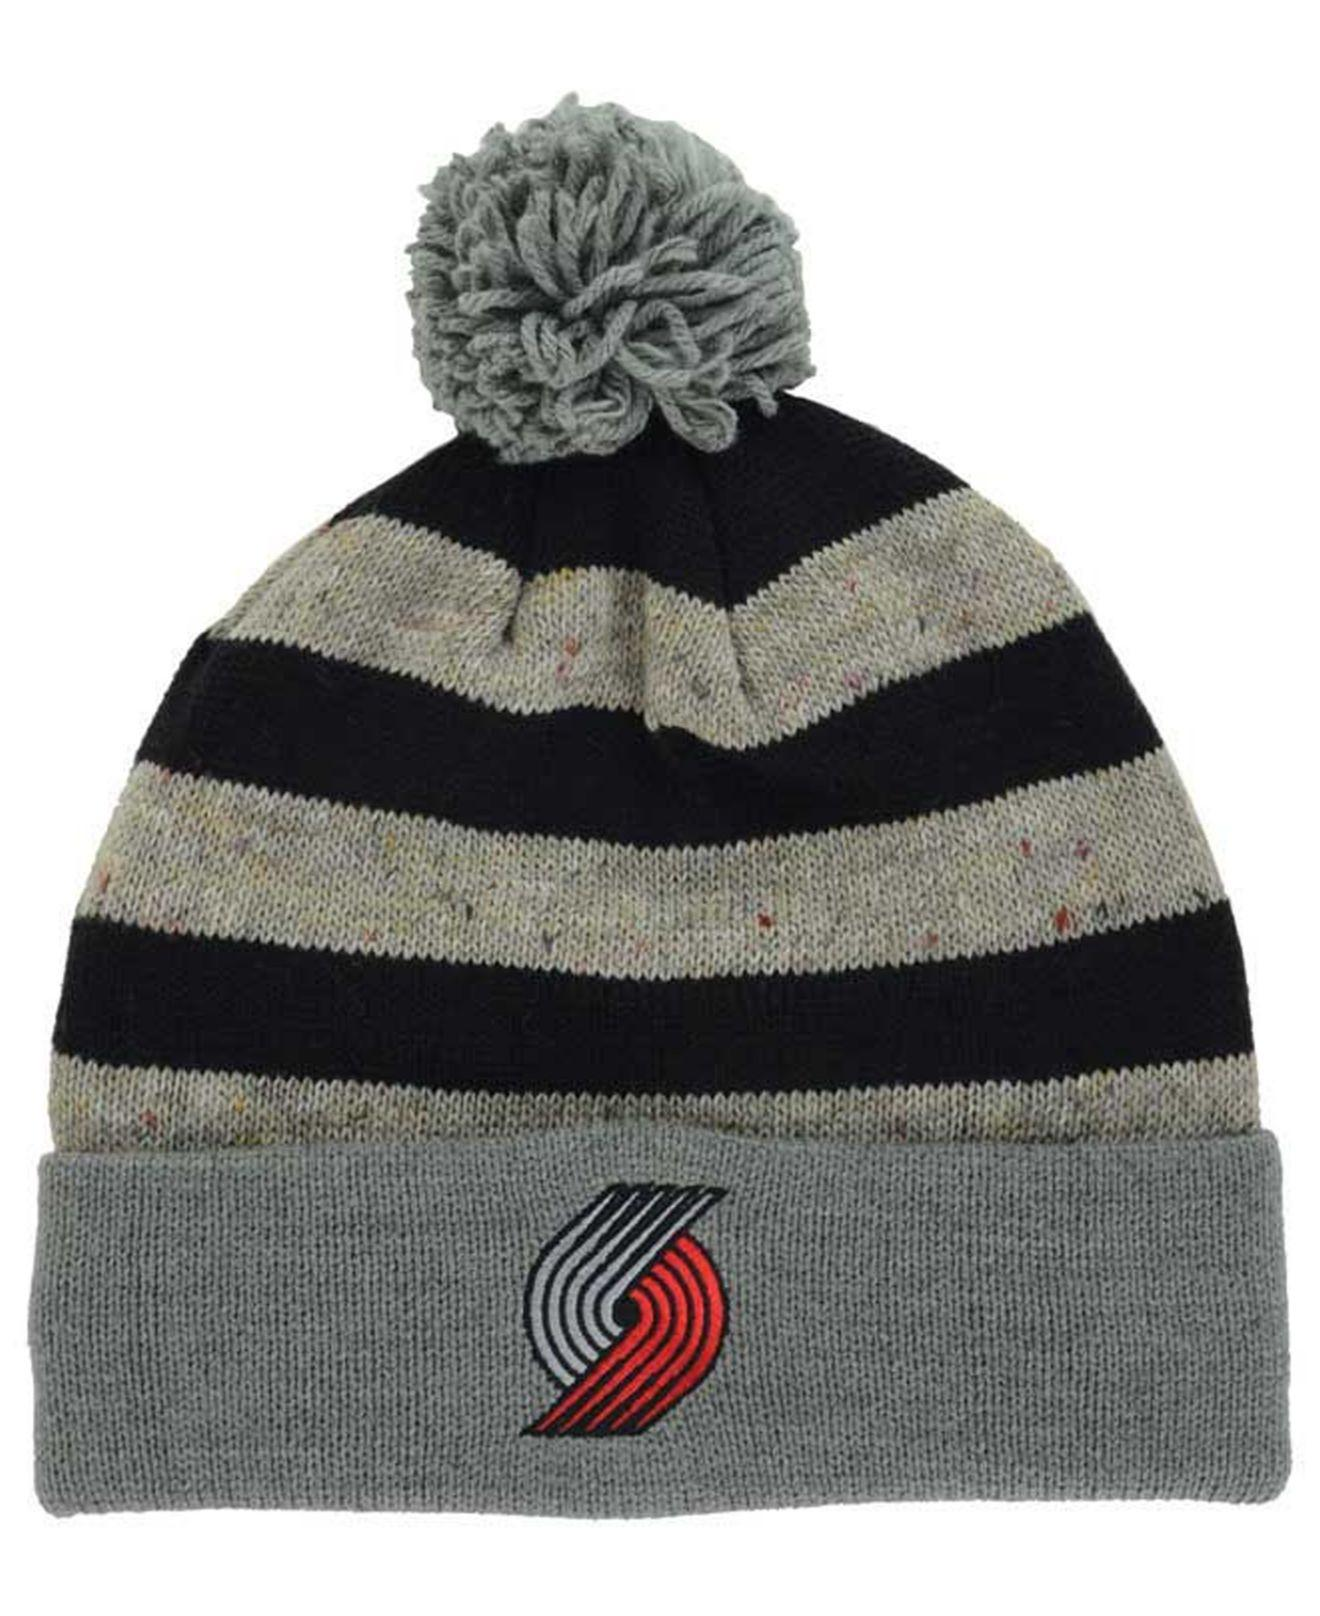 c75c13c5cb9 Lyst - Mitchell   Ness Speckled Knit Hat in Black for Men